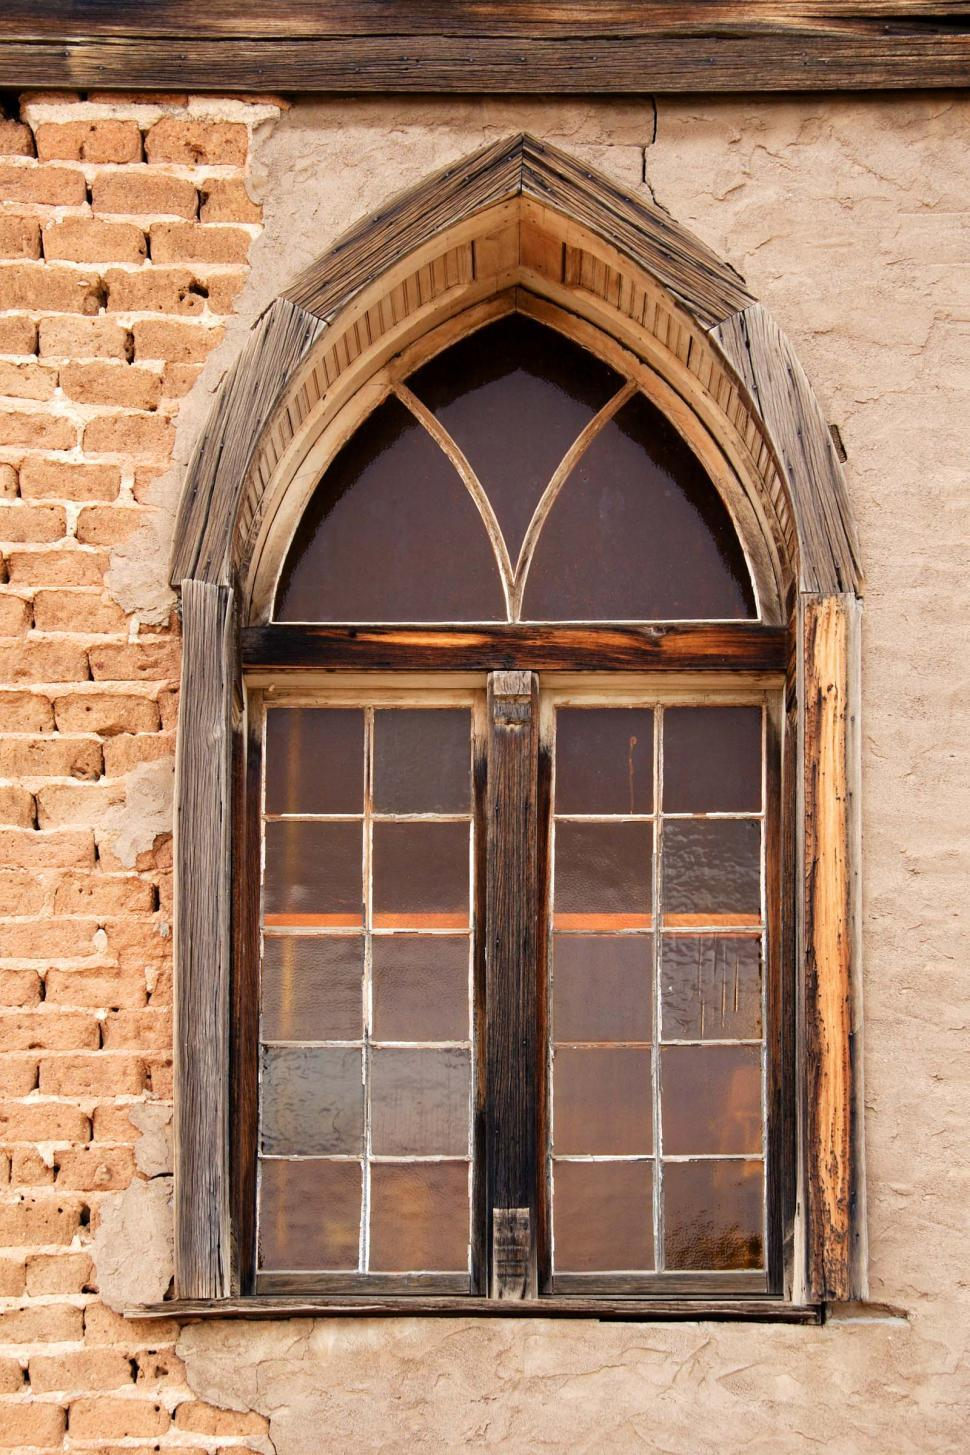 Download Free Stock Photo of Old church window